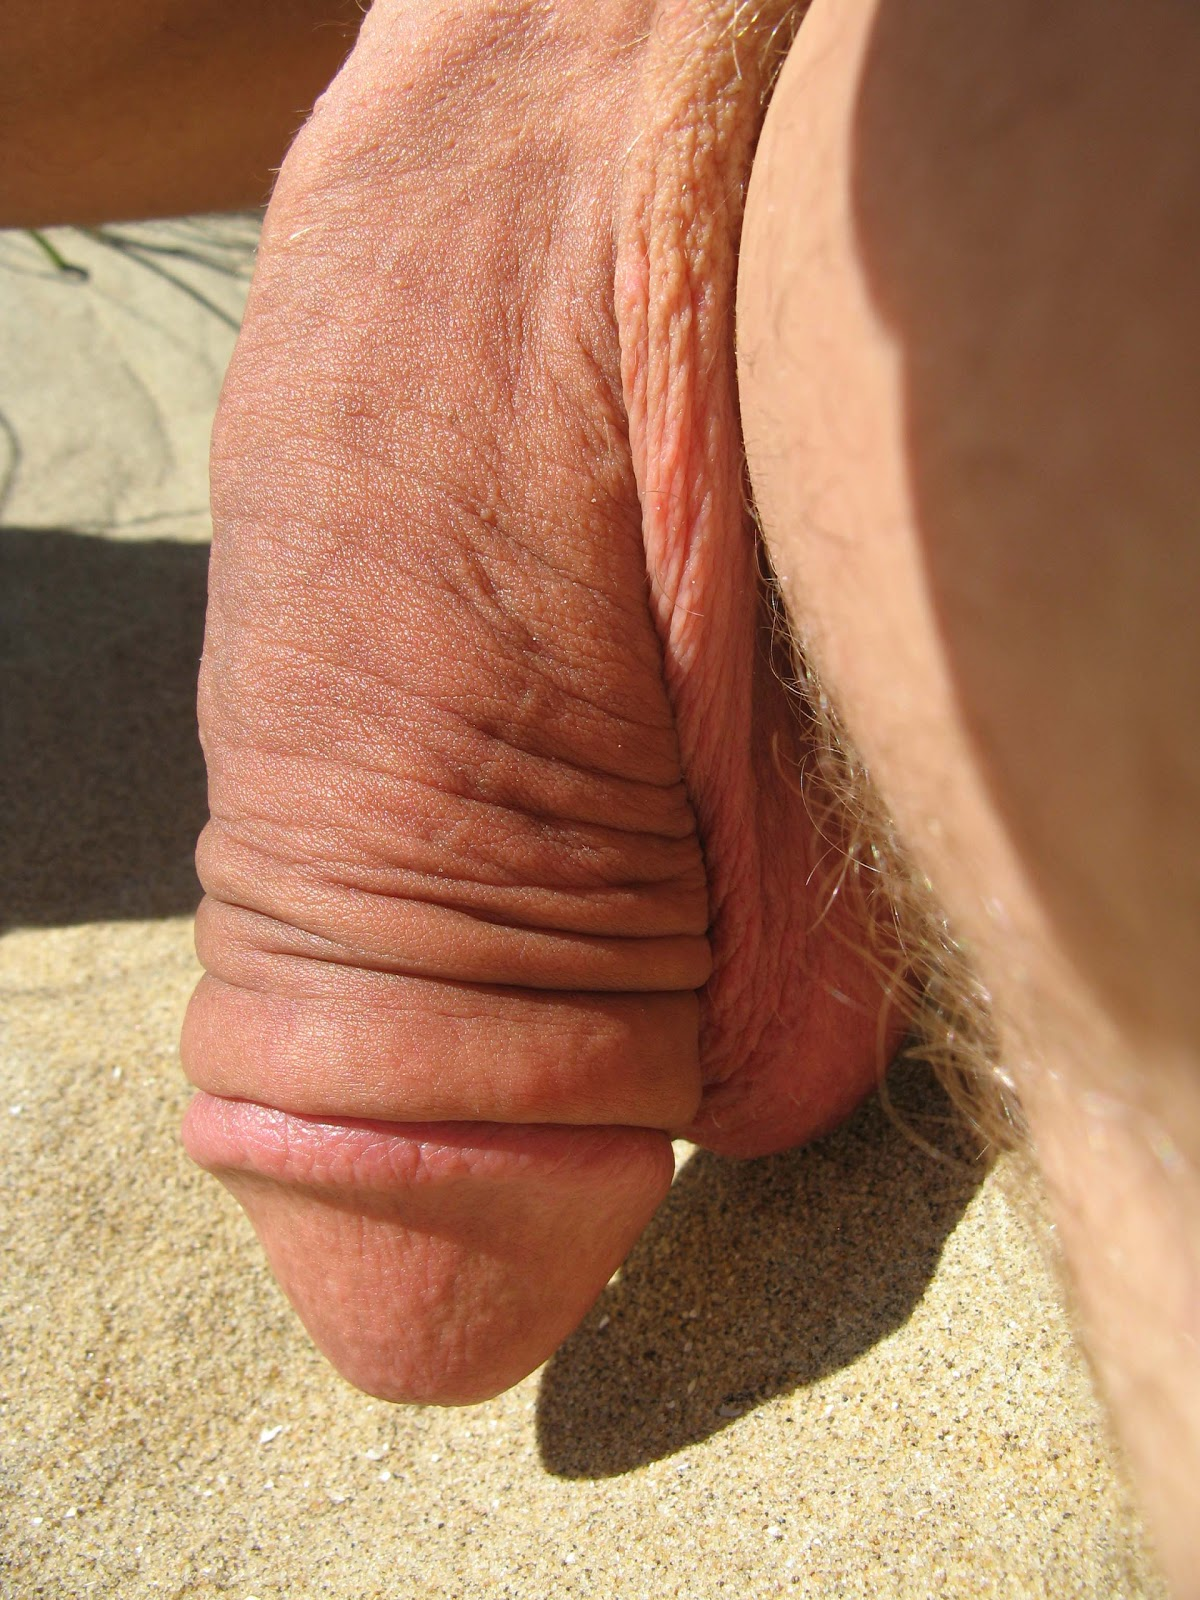 pic biggest soft dick ever